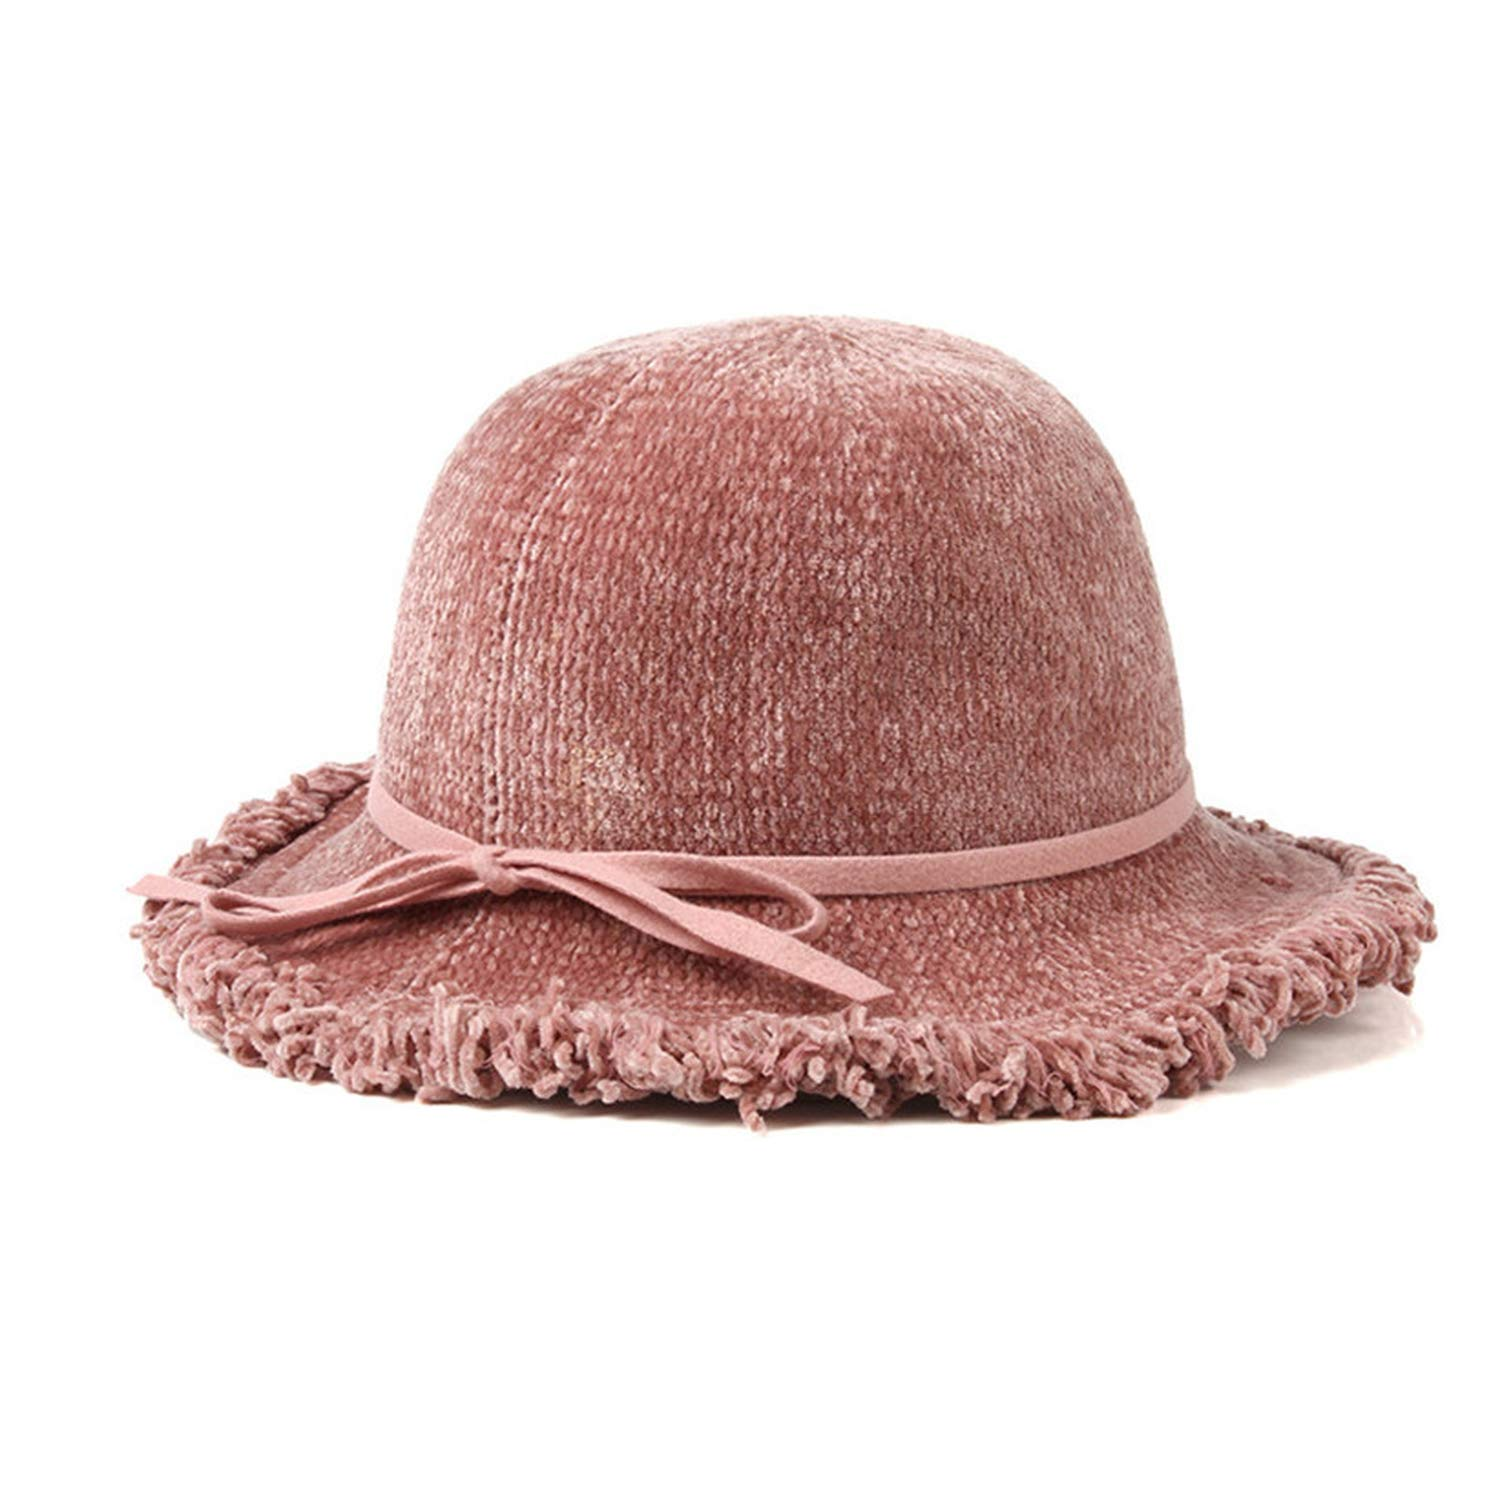 Winter Elegant Tassels Brim Women Fedora Hats Wedding Party Sun Hat Woman Warm Caps,PK,United States,One Size